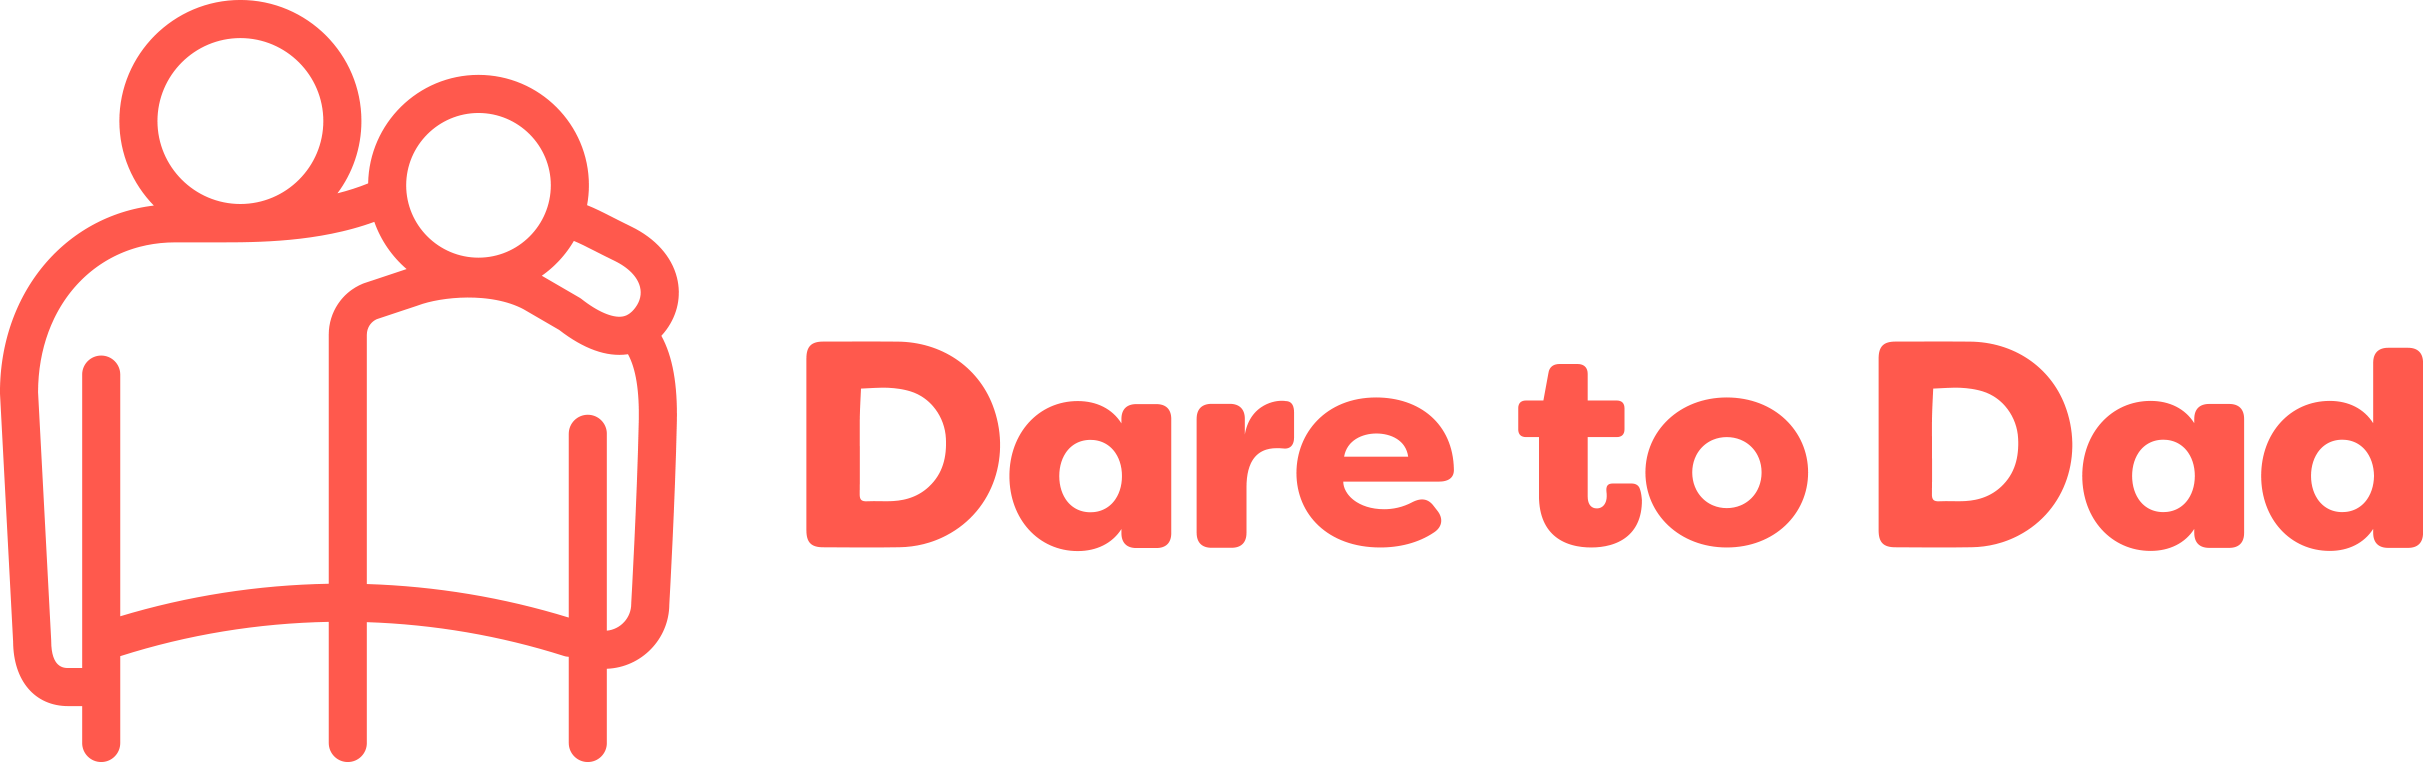 dare to dad empowering dads